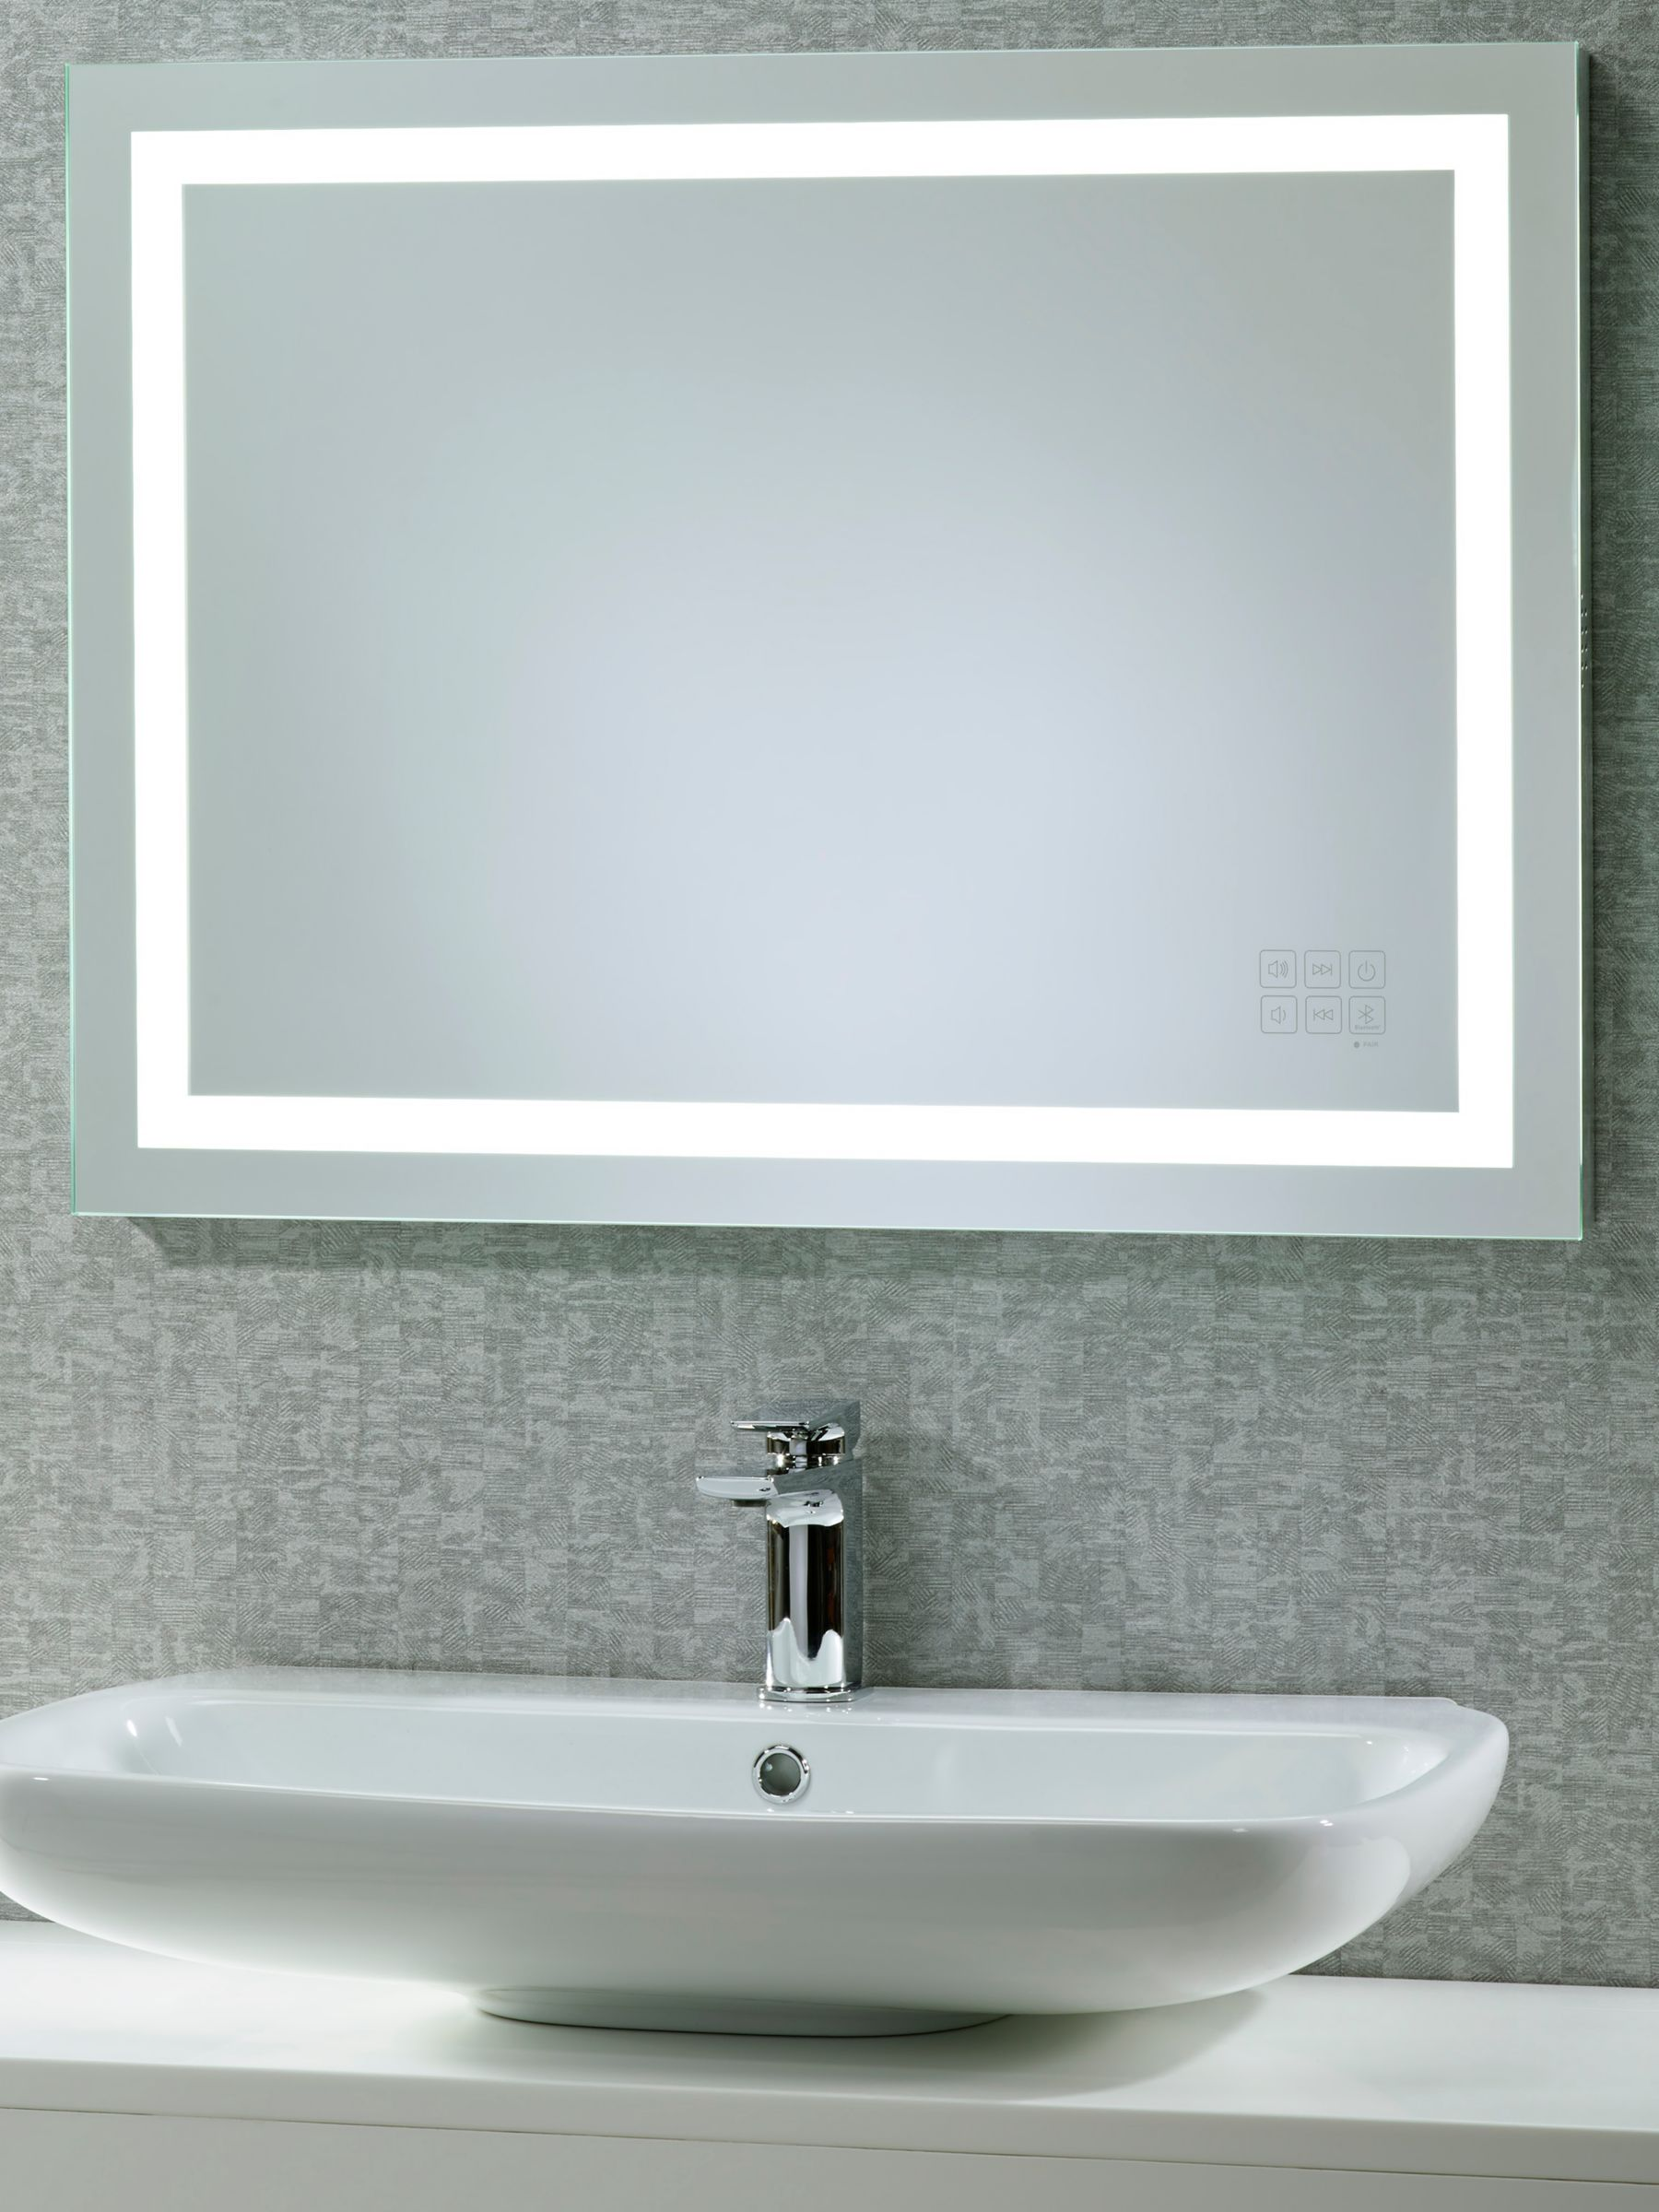 vanity led dimmer frame bathroom mirror mirrors w wall glass glashaus mount lighted inch shelf x products